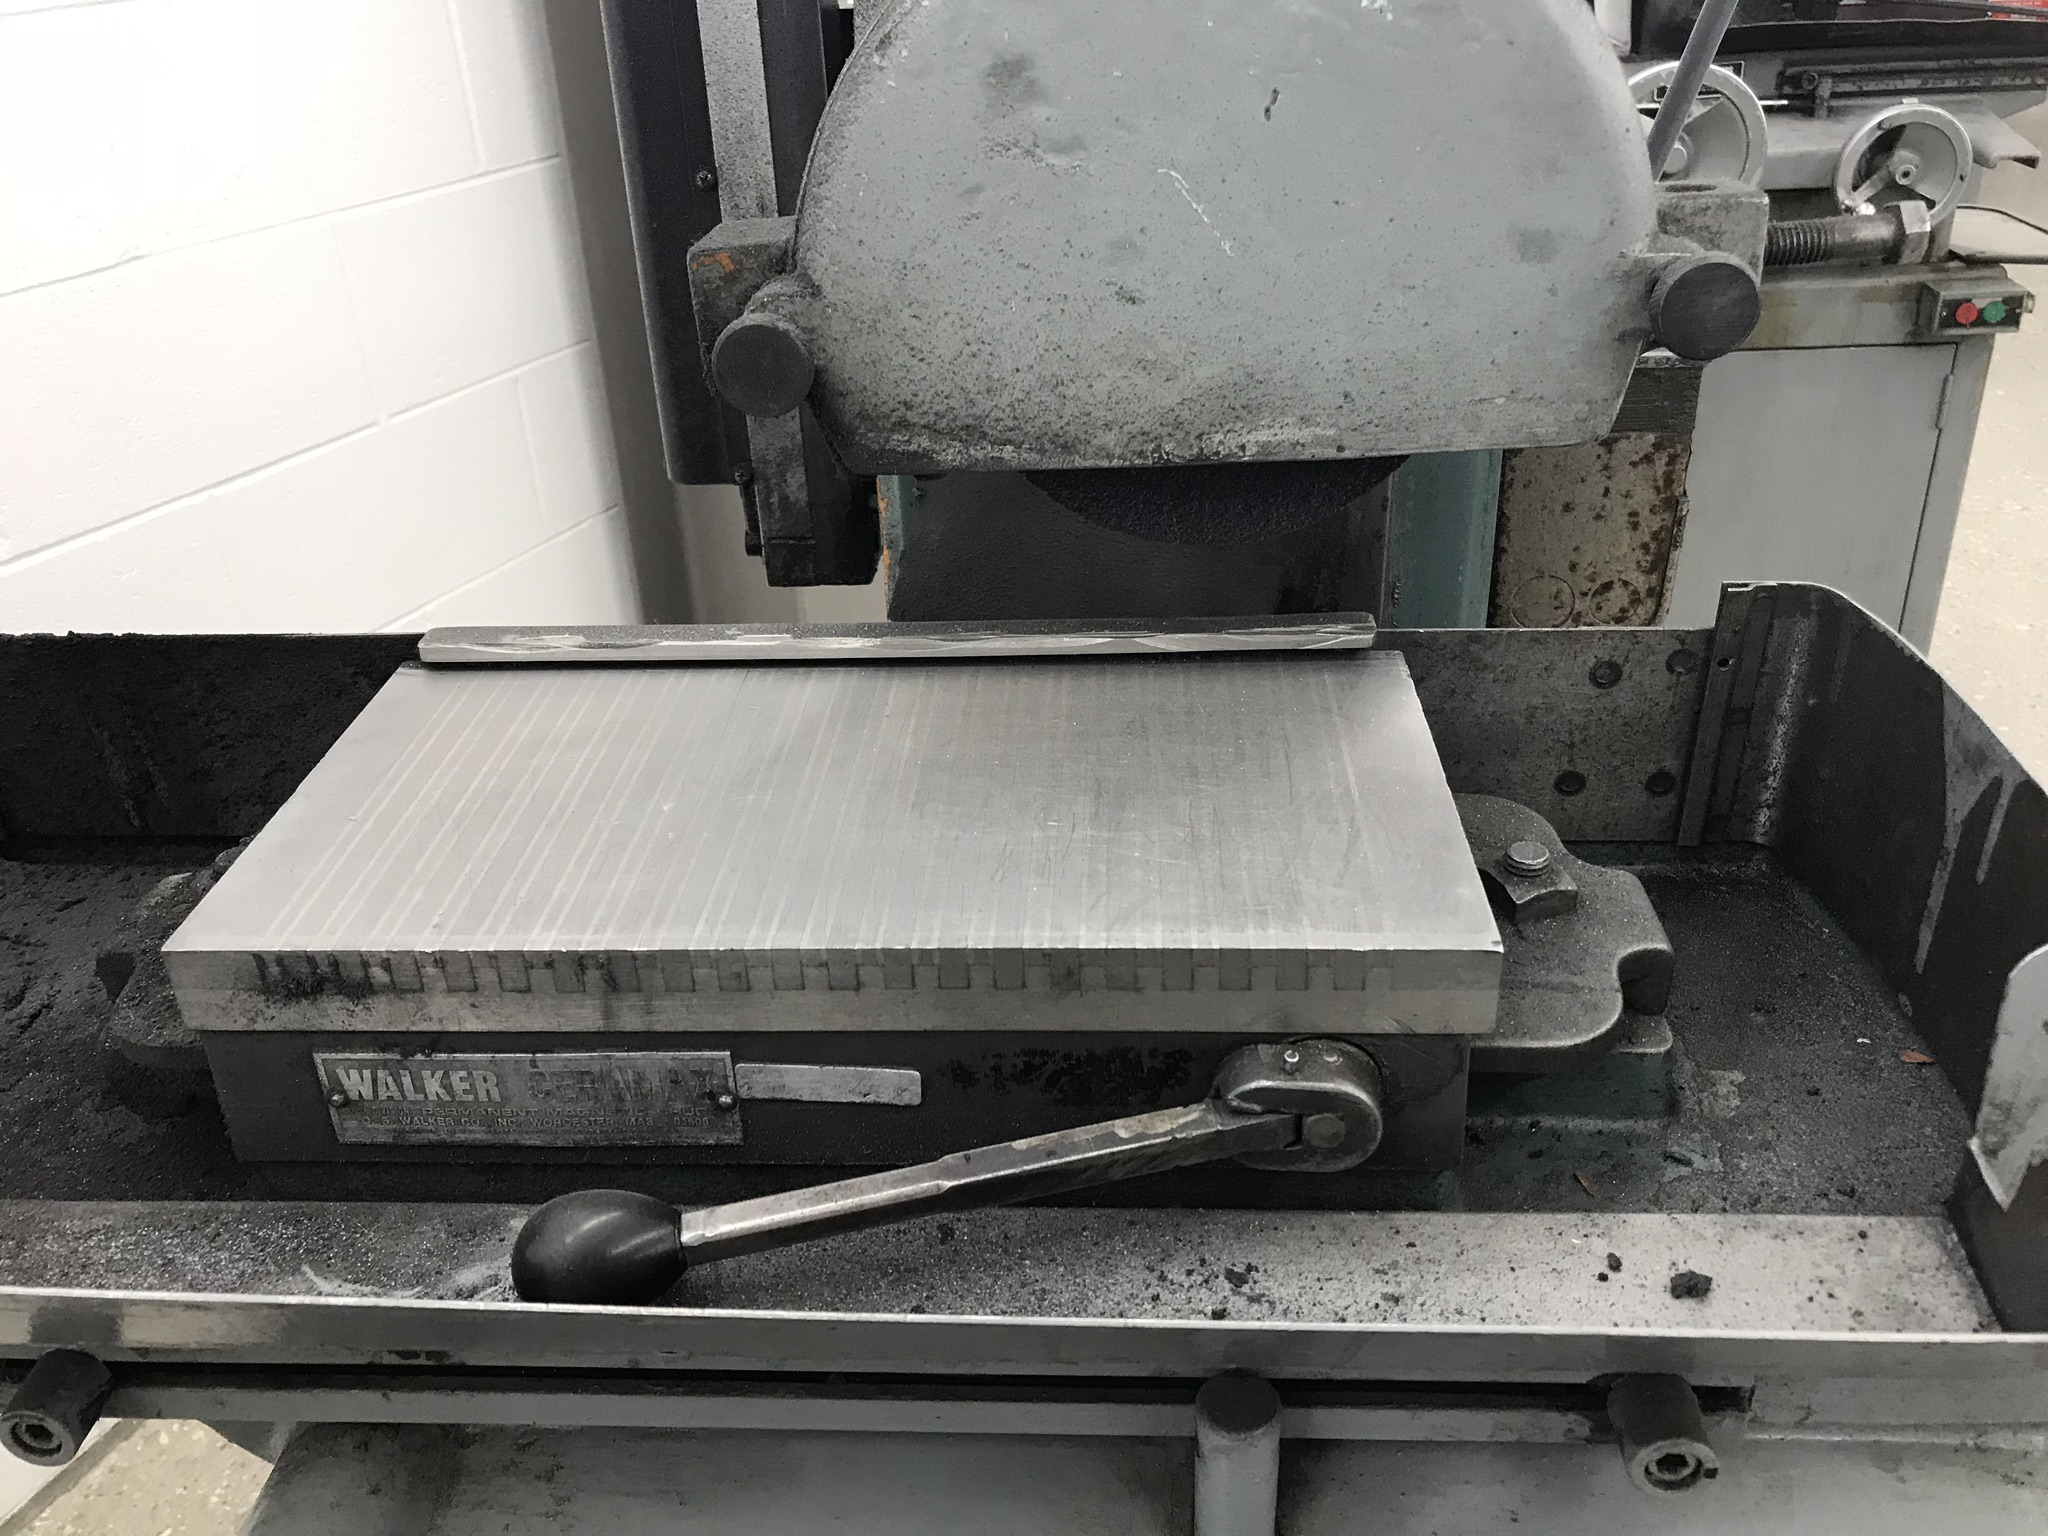 """Harig Super 612 6"""" x 12"""" Surface Grinder with Scales for X, Y DRO, 6"""" x 12"""" Permanent Chuck, Coolant - Image 2 of 4"""